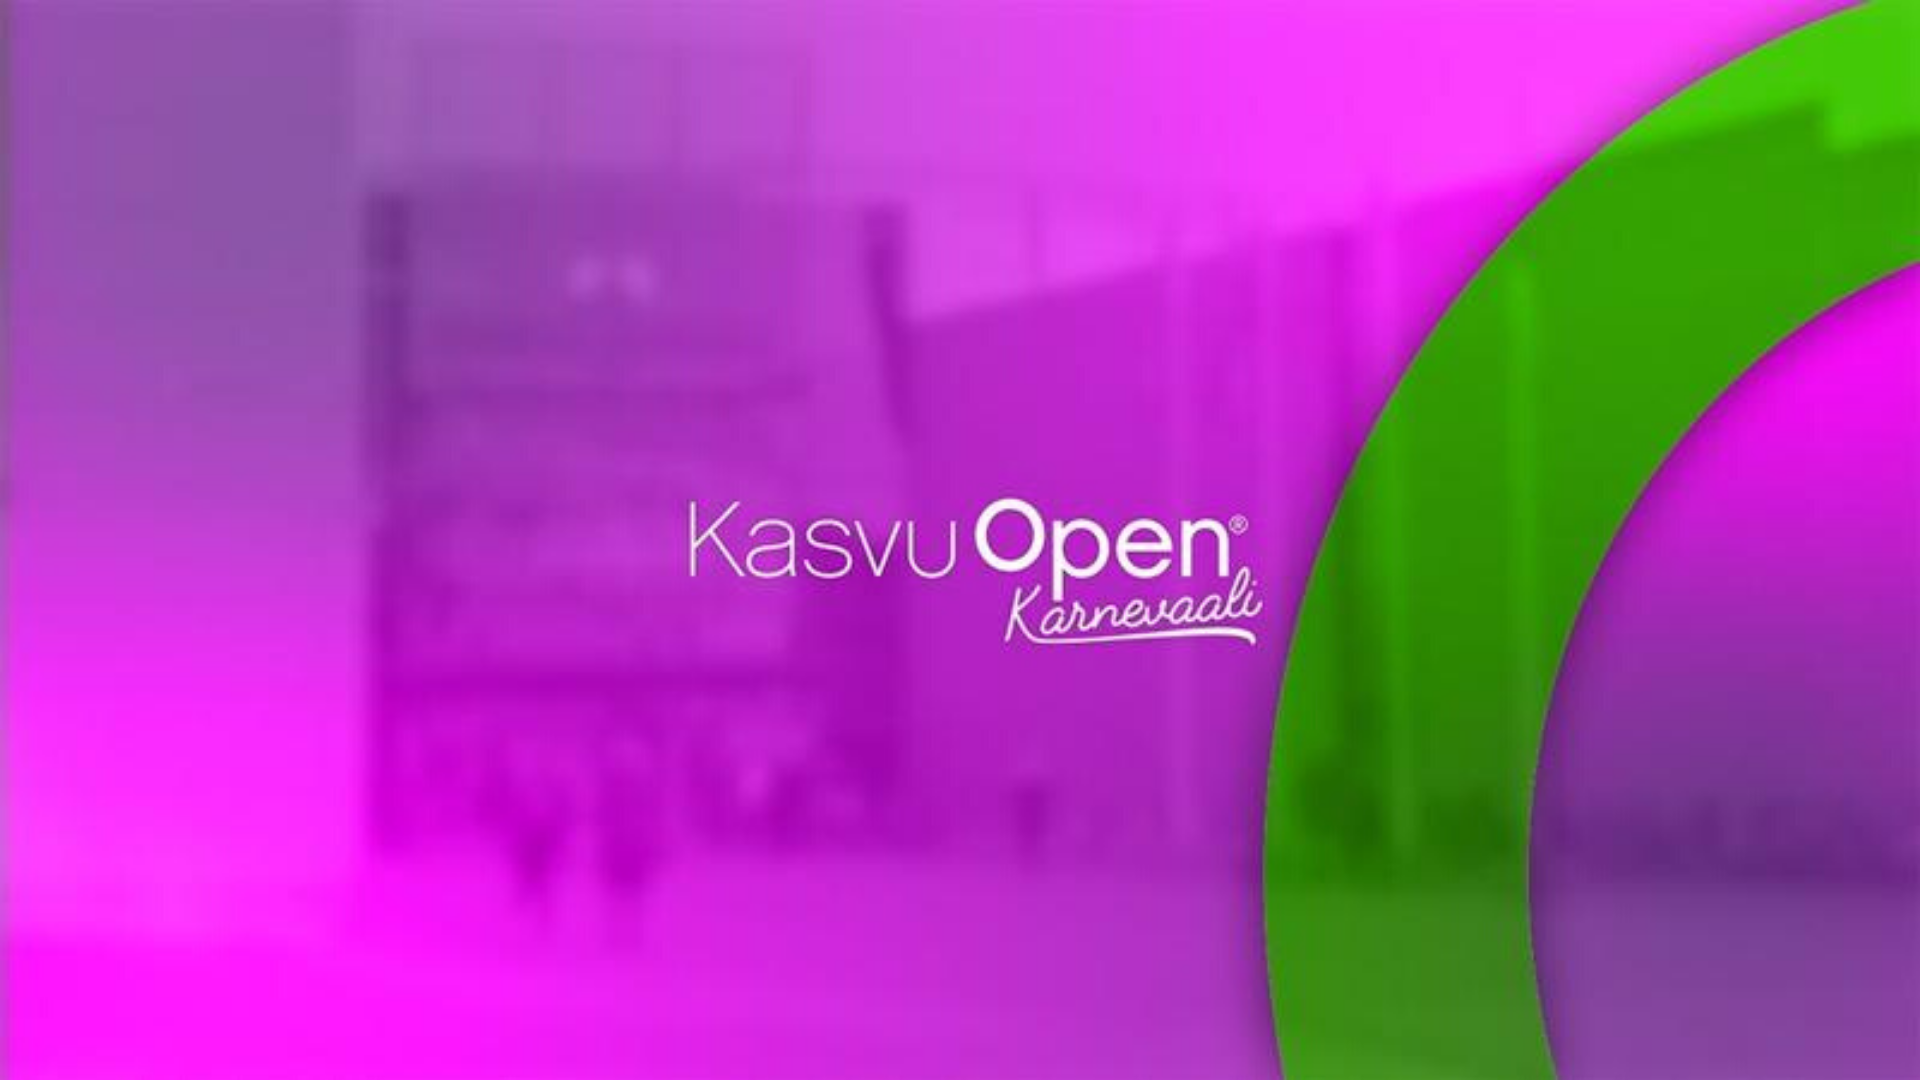 Meet Zoy at Kasvu Open